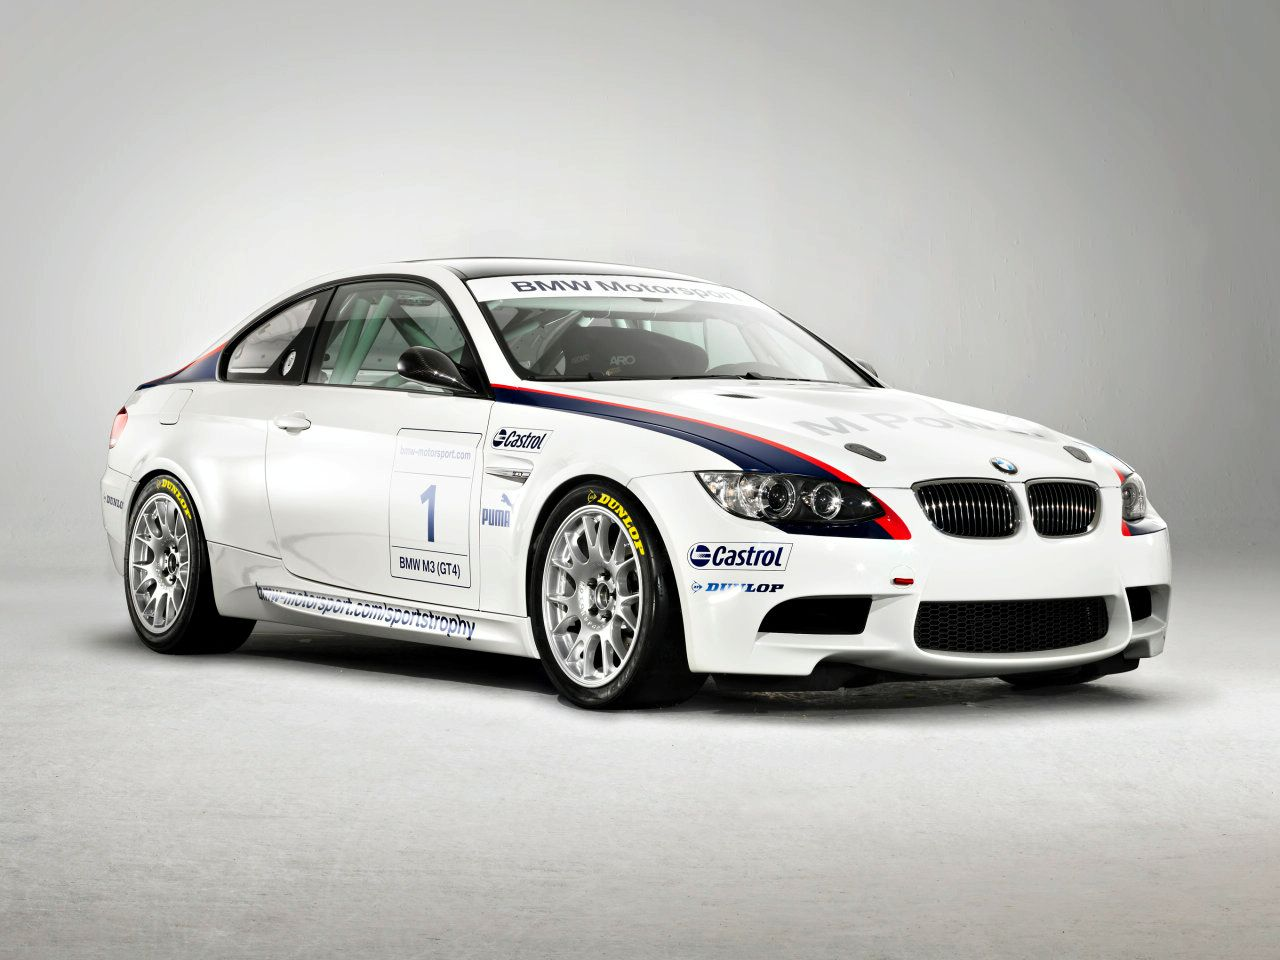 BMW M3 GT4 Car Wallpaper